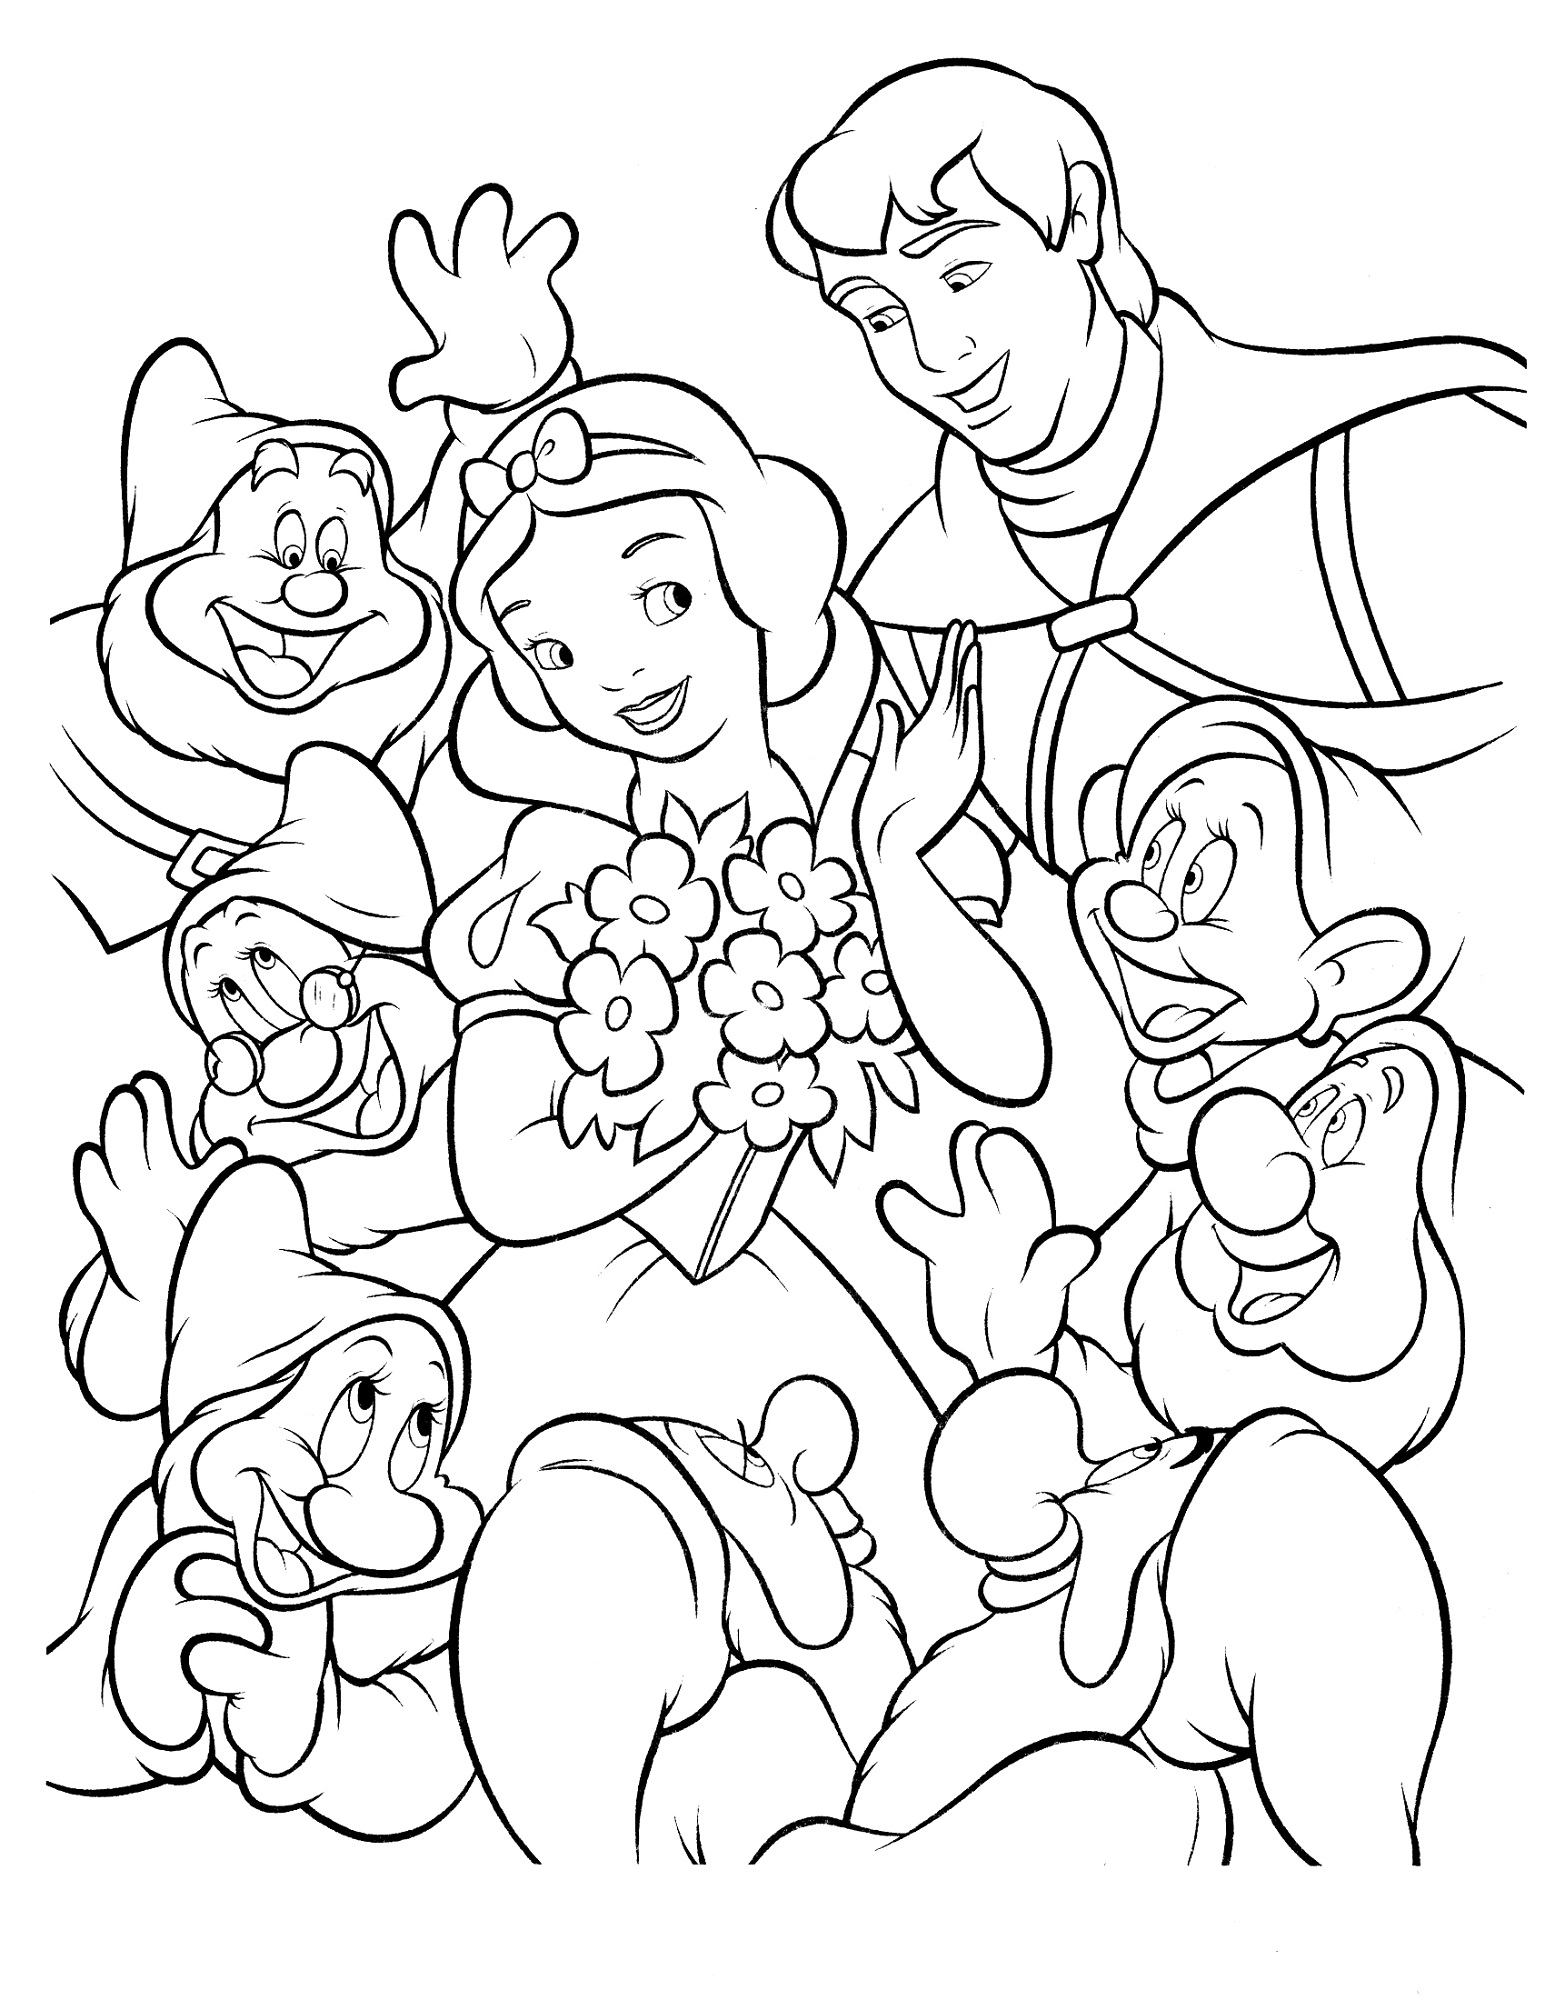 snpw white coloring pages - photo#38